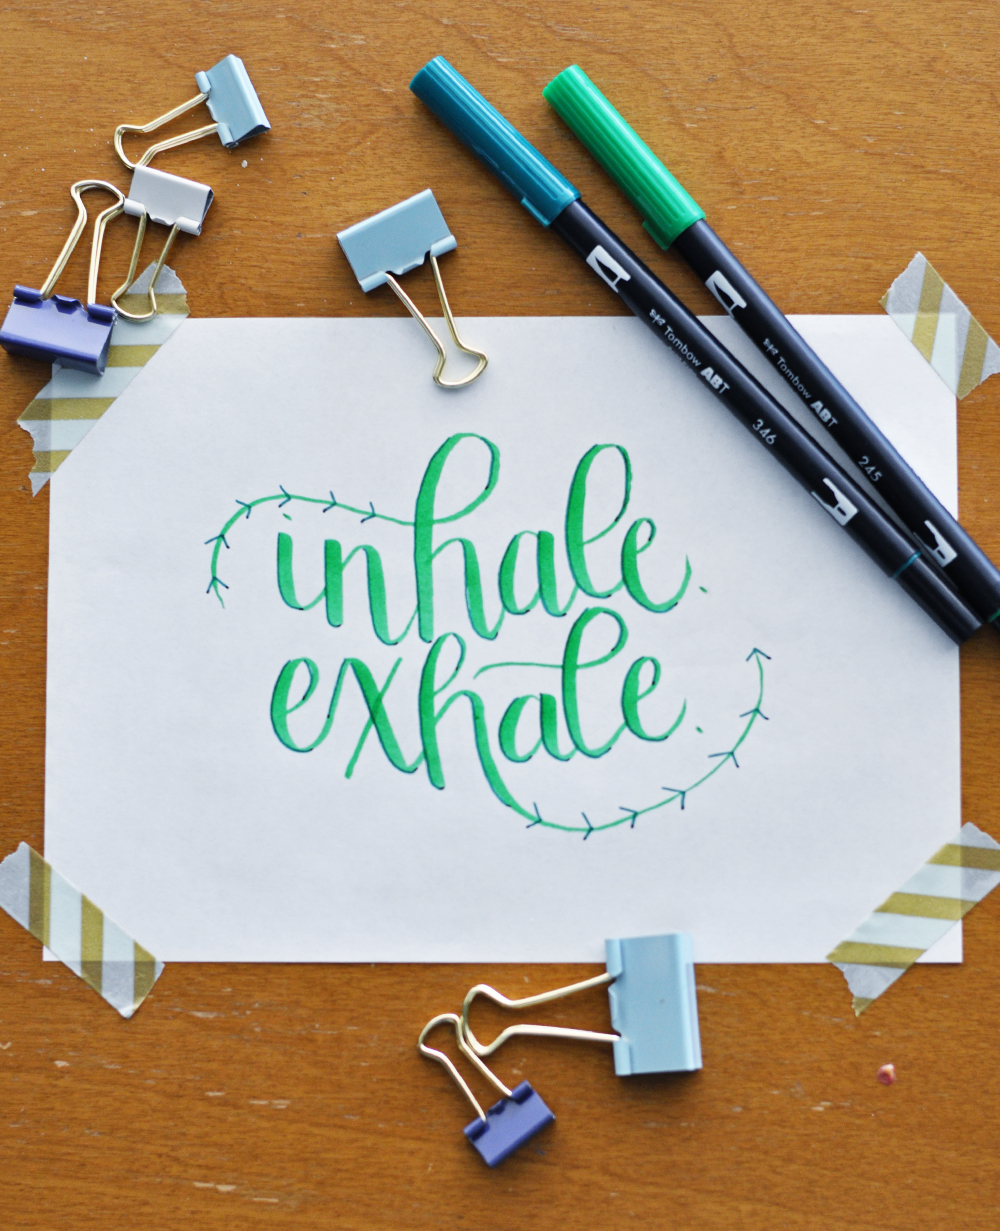 inhale. exhale. focus on breathing well to get through this stressful moment.